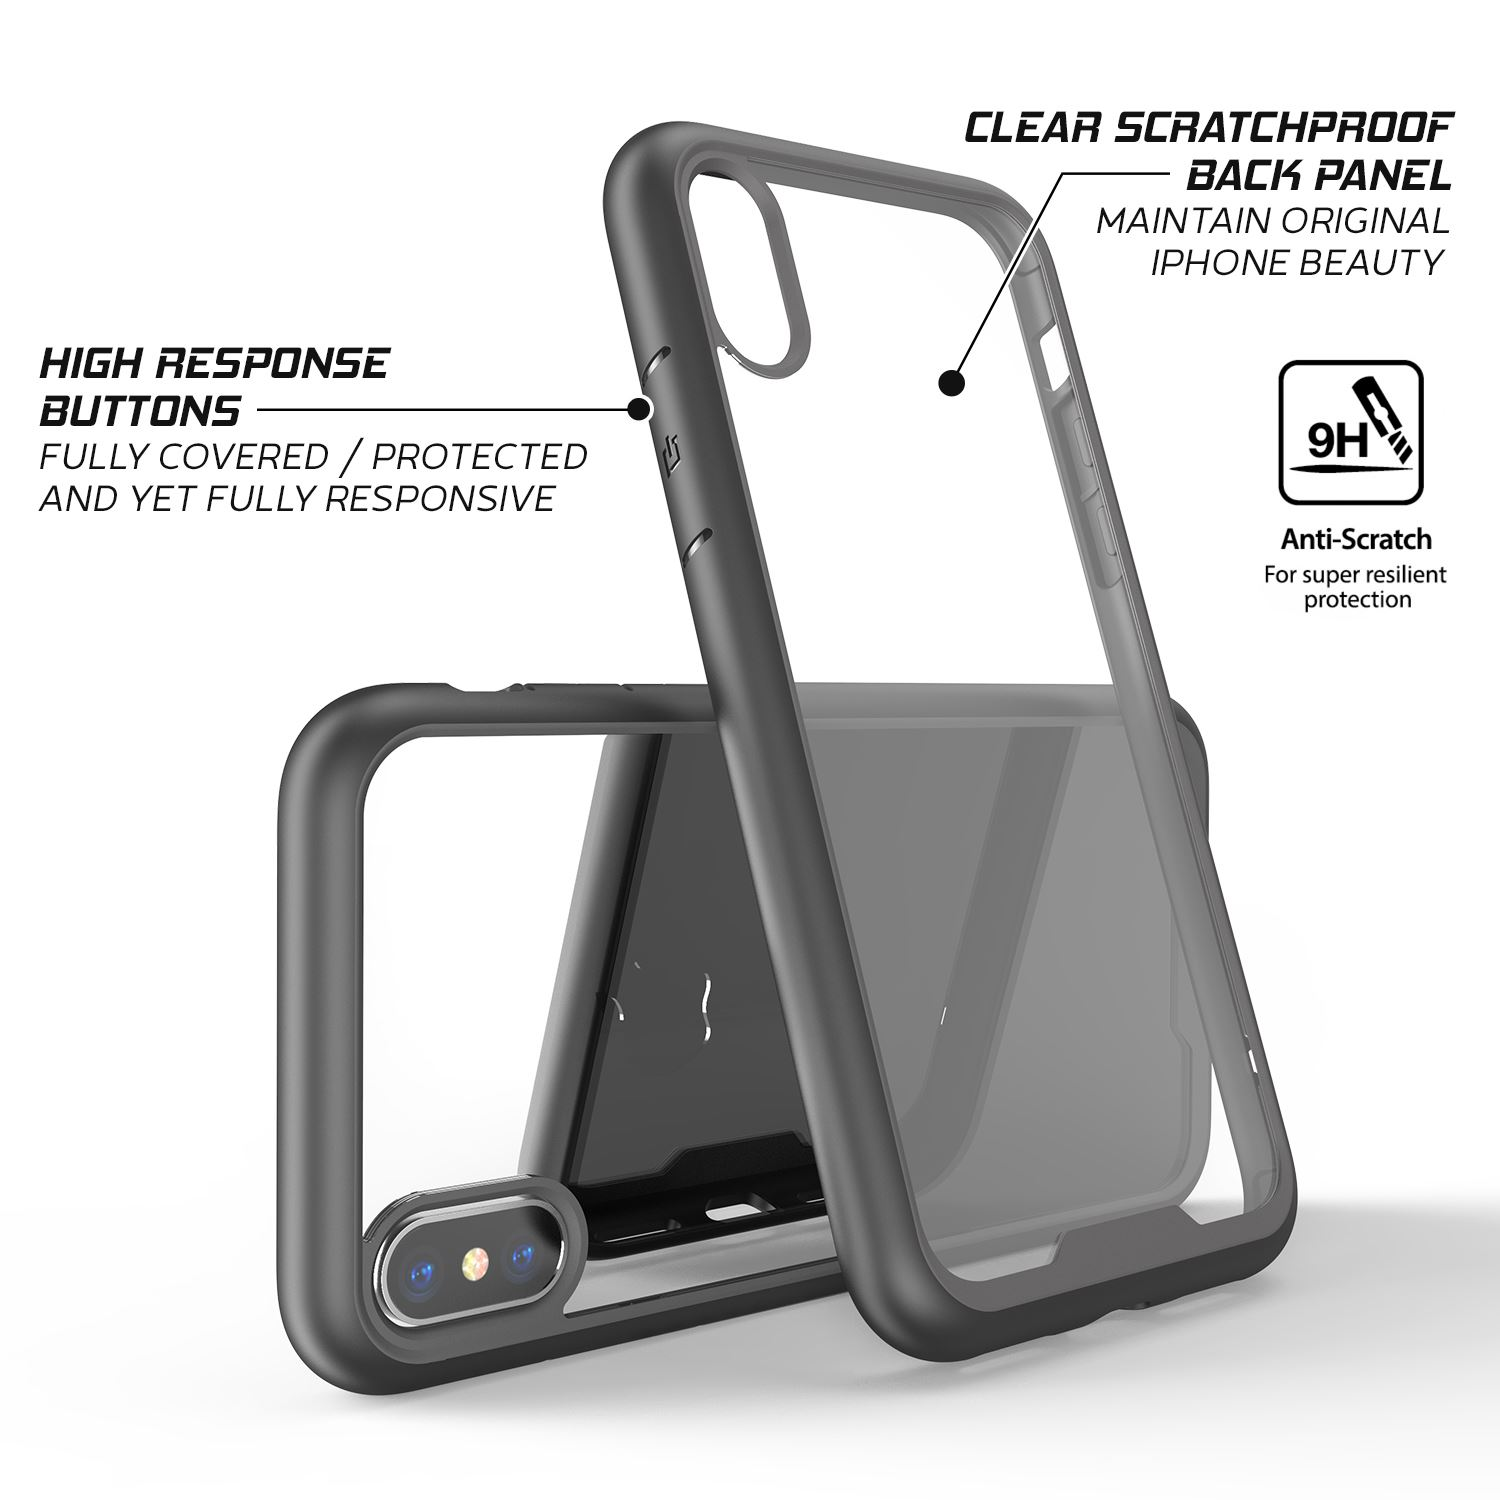 thumbnail 17 - For Apple iPhone XR Xs Max X 8 7 Plus 6 Se 2020 Case Cover Clear Shockproof Thin